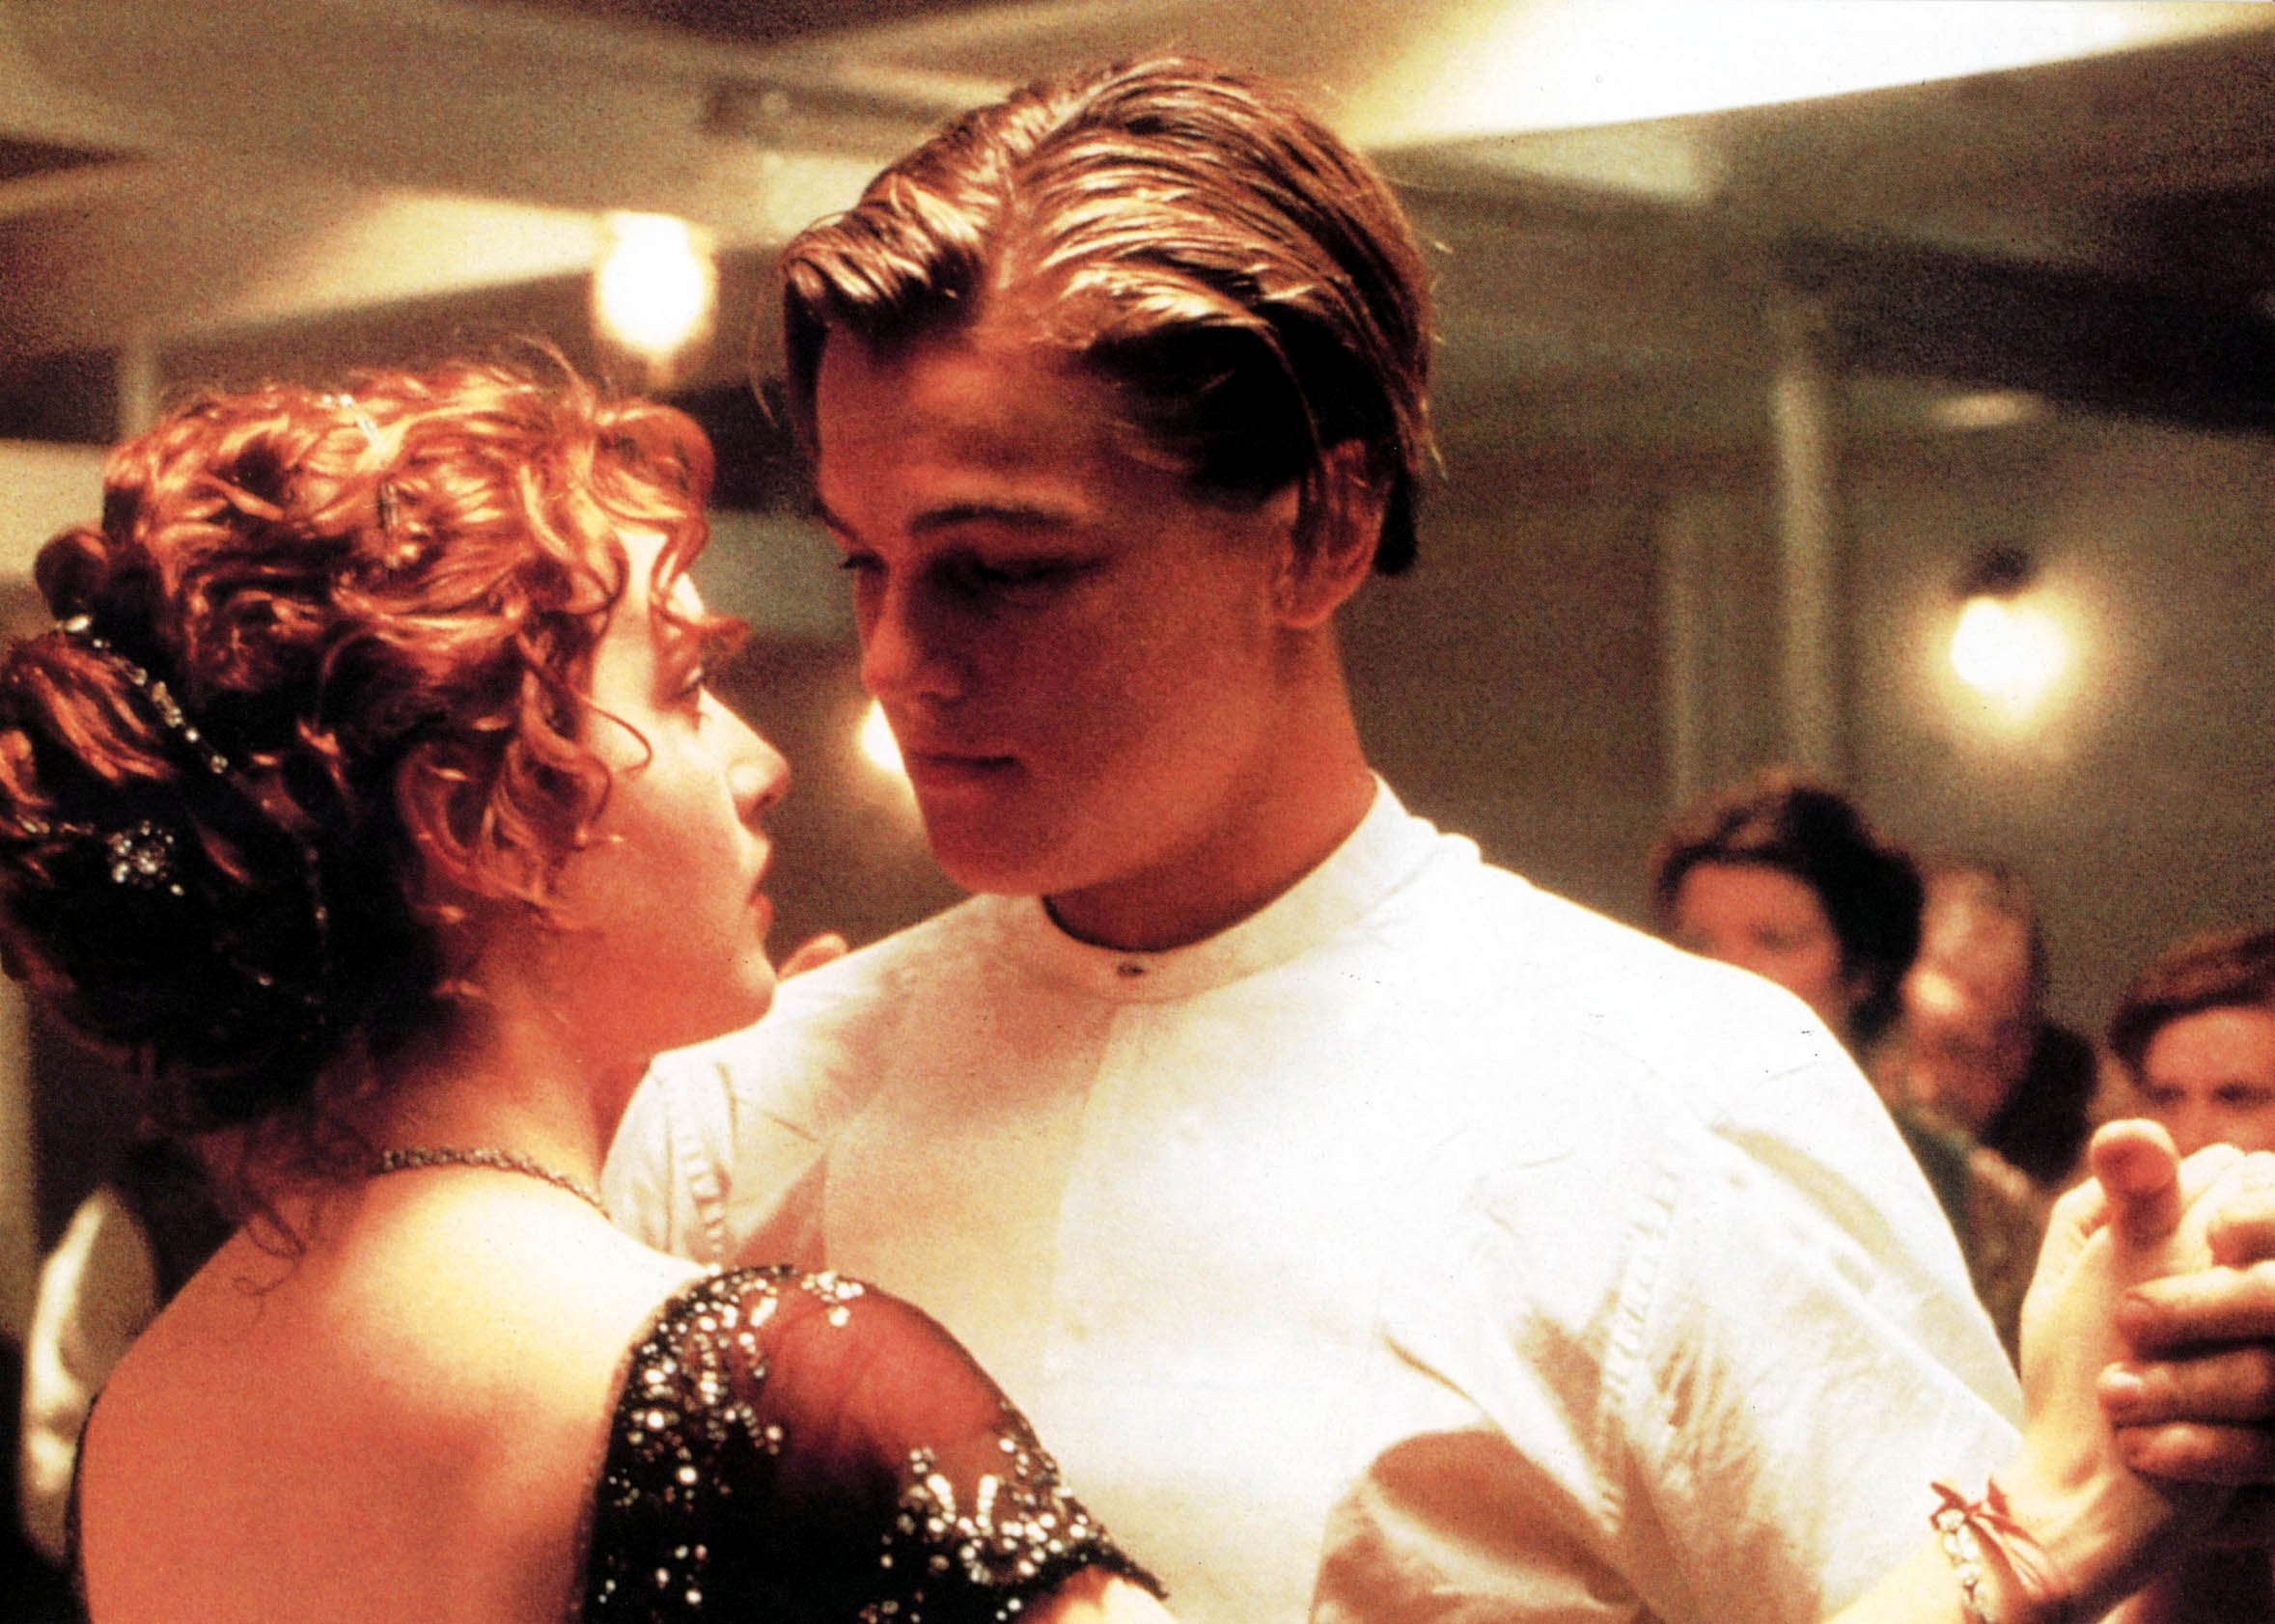 TITANIC [US 1997]  KATE WINSLET, LEONARDO DICAPRIO     Date: 1997, Image: 43121532, License: Rights-managed, Restrictions: , Model Release: no, Credit line: Profimedia, Mary Evans Picture Librar